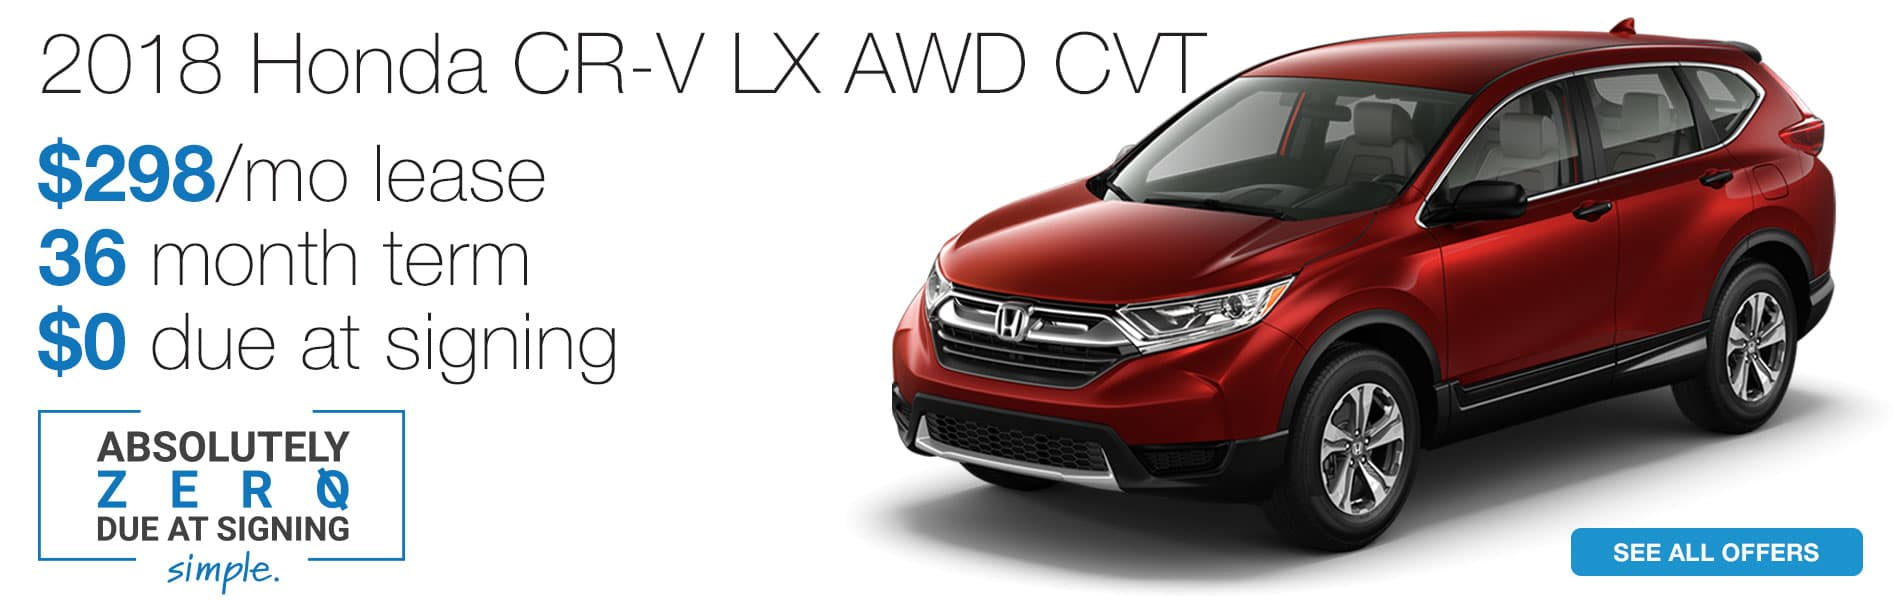 Lease a 2018 Honda CR-V LX AWD for $298 per month with absolutely $0 due at signing